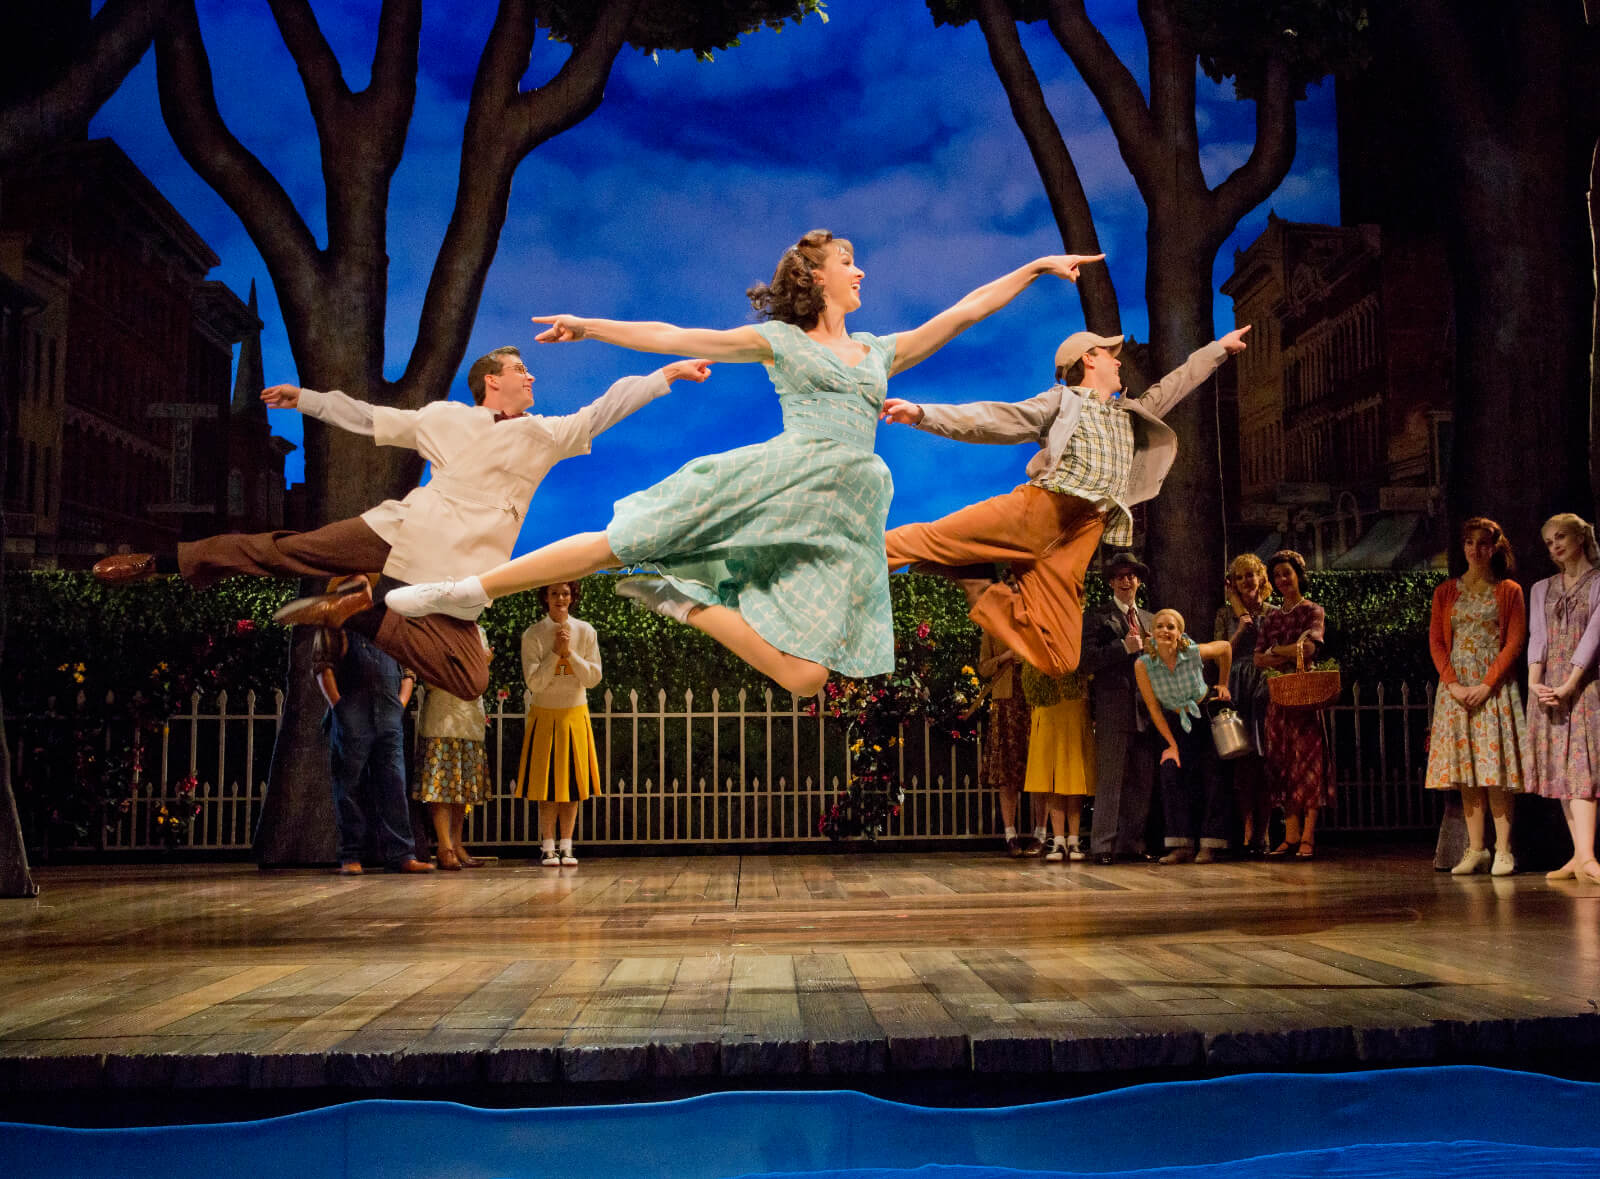 """Jason Lee Garrett, Lara Seibert Young, and Cary Tedder performing """"Out There on the Road"""". The trio leaps in unison onstage."""